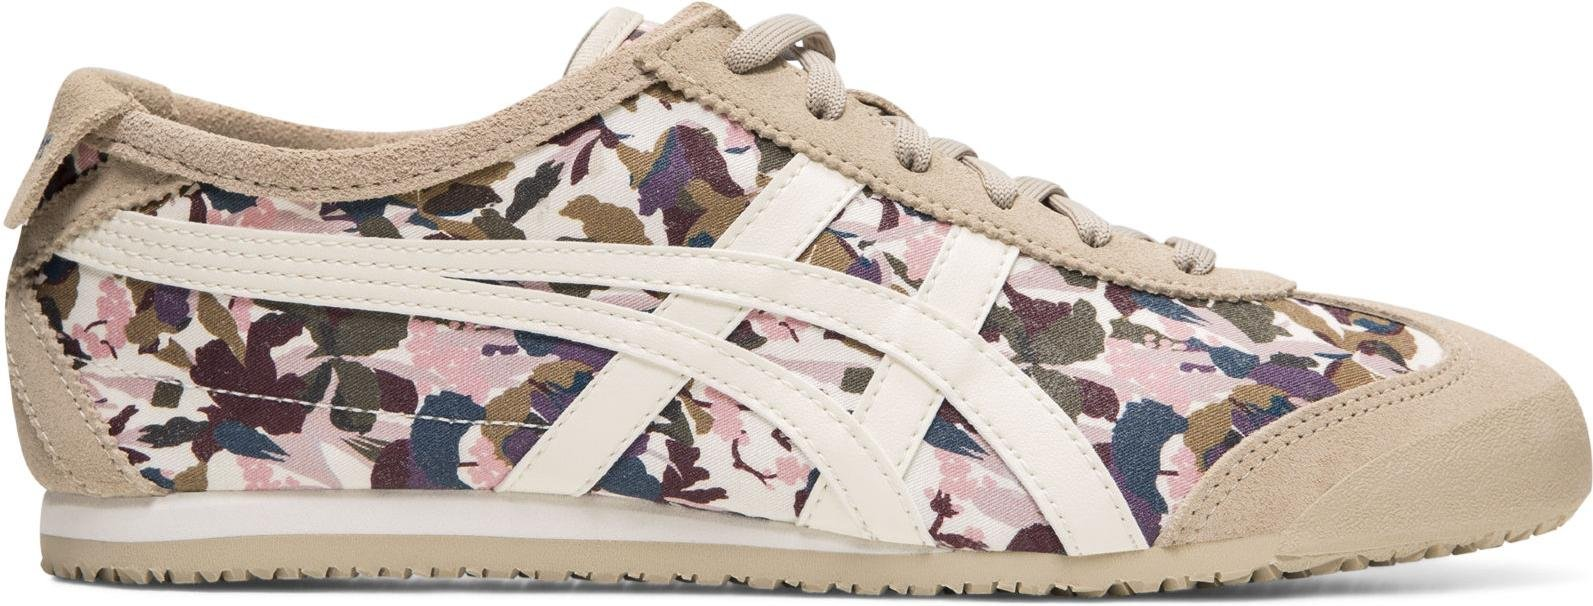 Shoes Onitsuka Tiger MEXICO 66